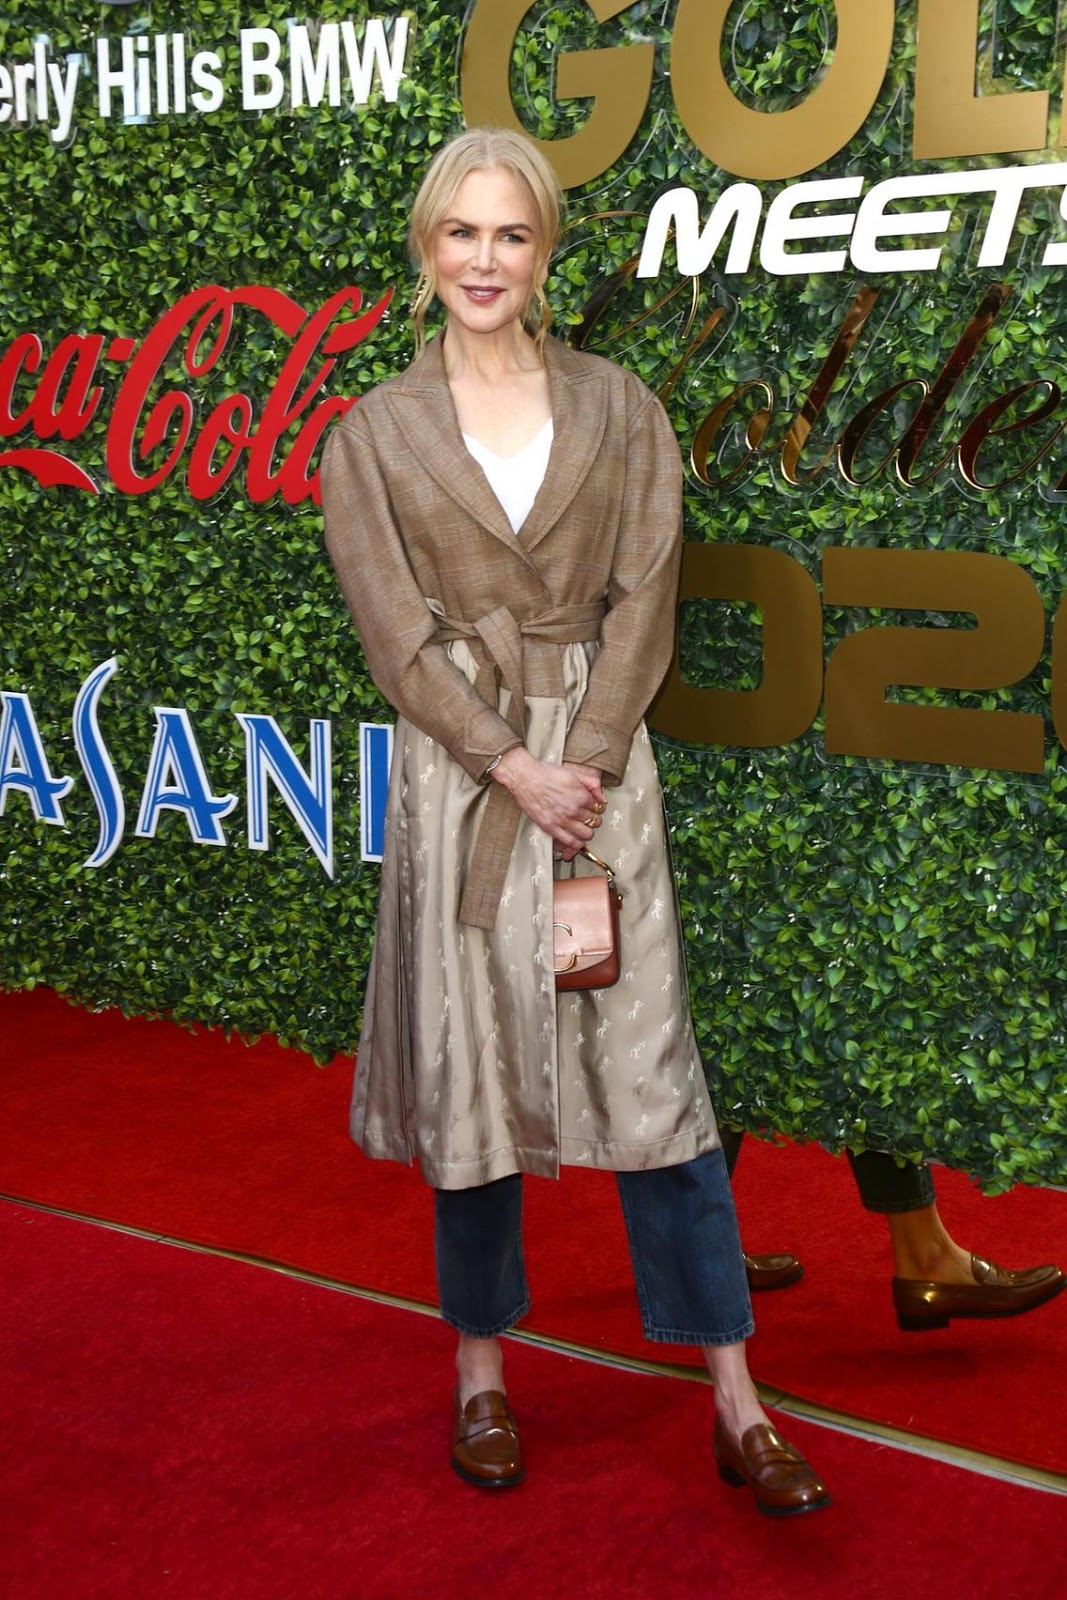 Nicole Kidman channels relaxed Hollywood glam in a tan-hued trench coat at the Gold Meets Golden brunch in Los Angeles